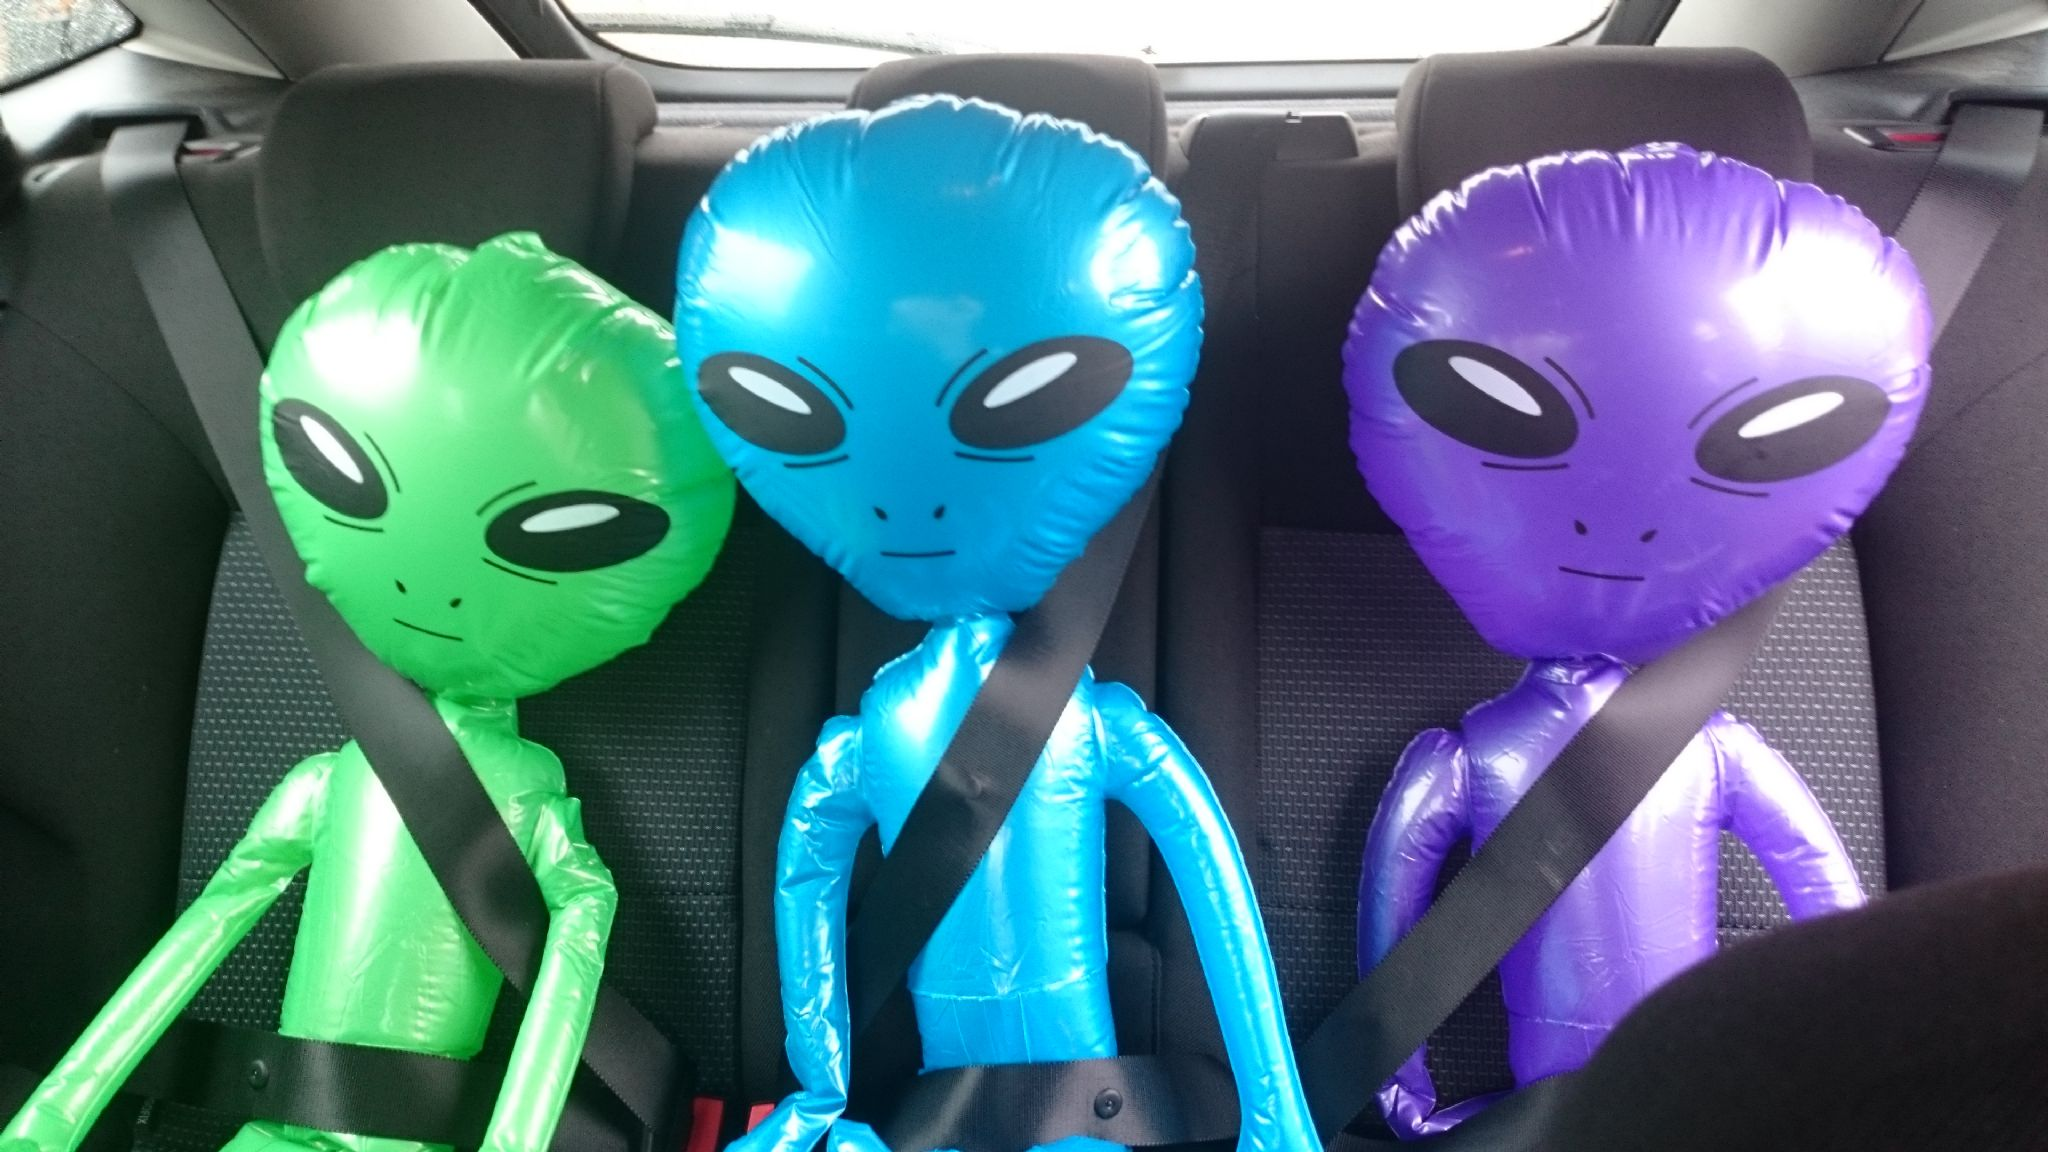 Inflatable Aliens in the Car